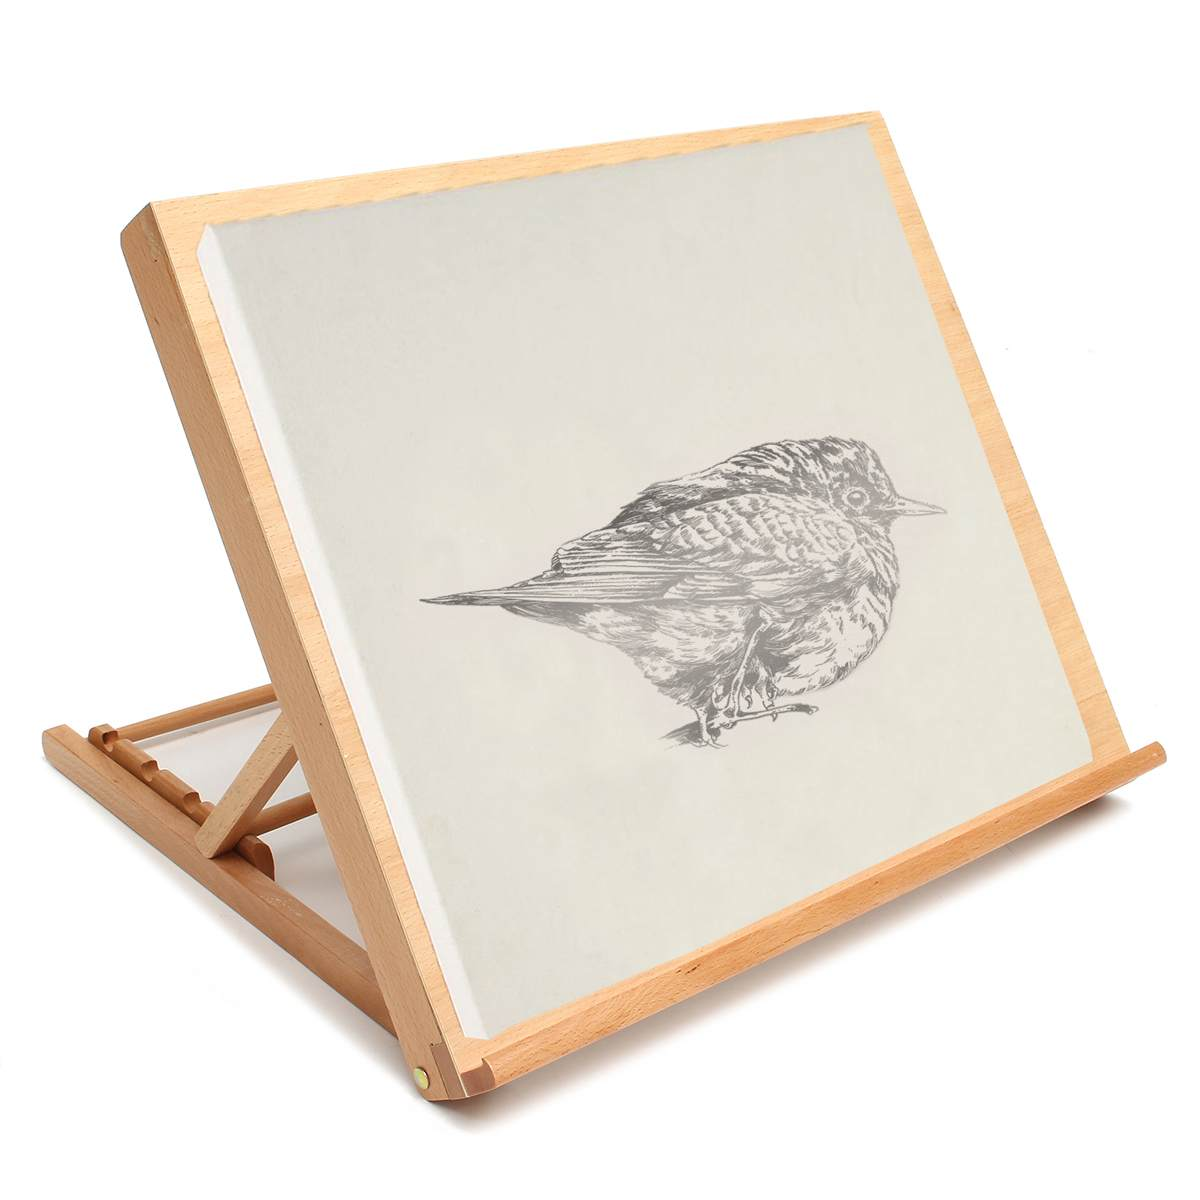 Wooden Drawing Table Portable Sketch Bookshelf Wood Stand Desktop Watercolor Oil Easel For Painting Art Supplies For Artist